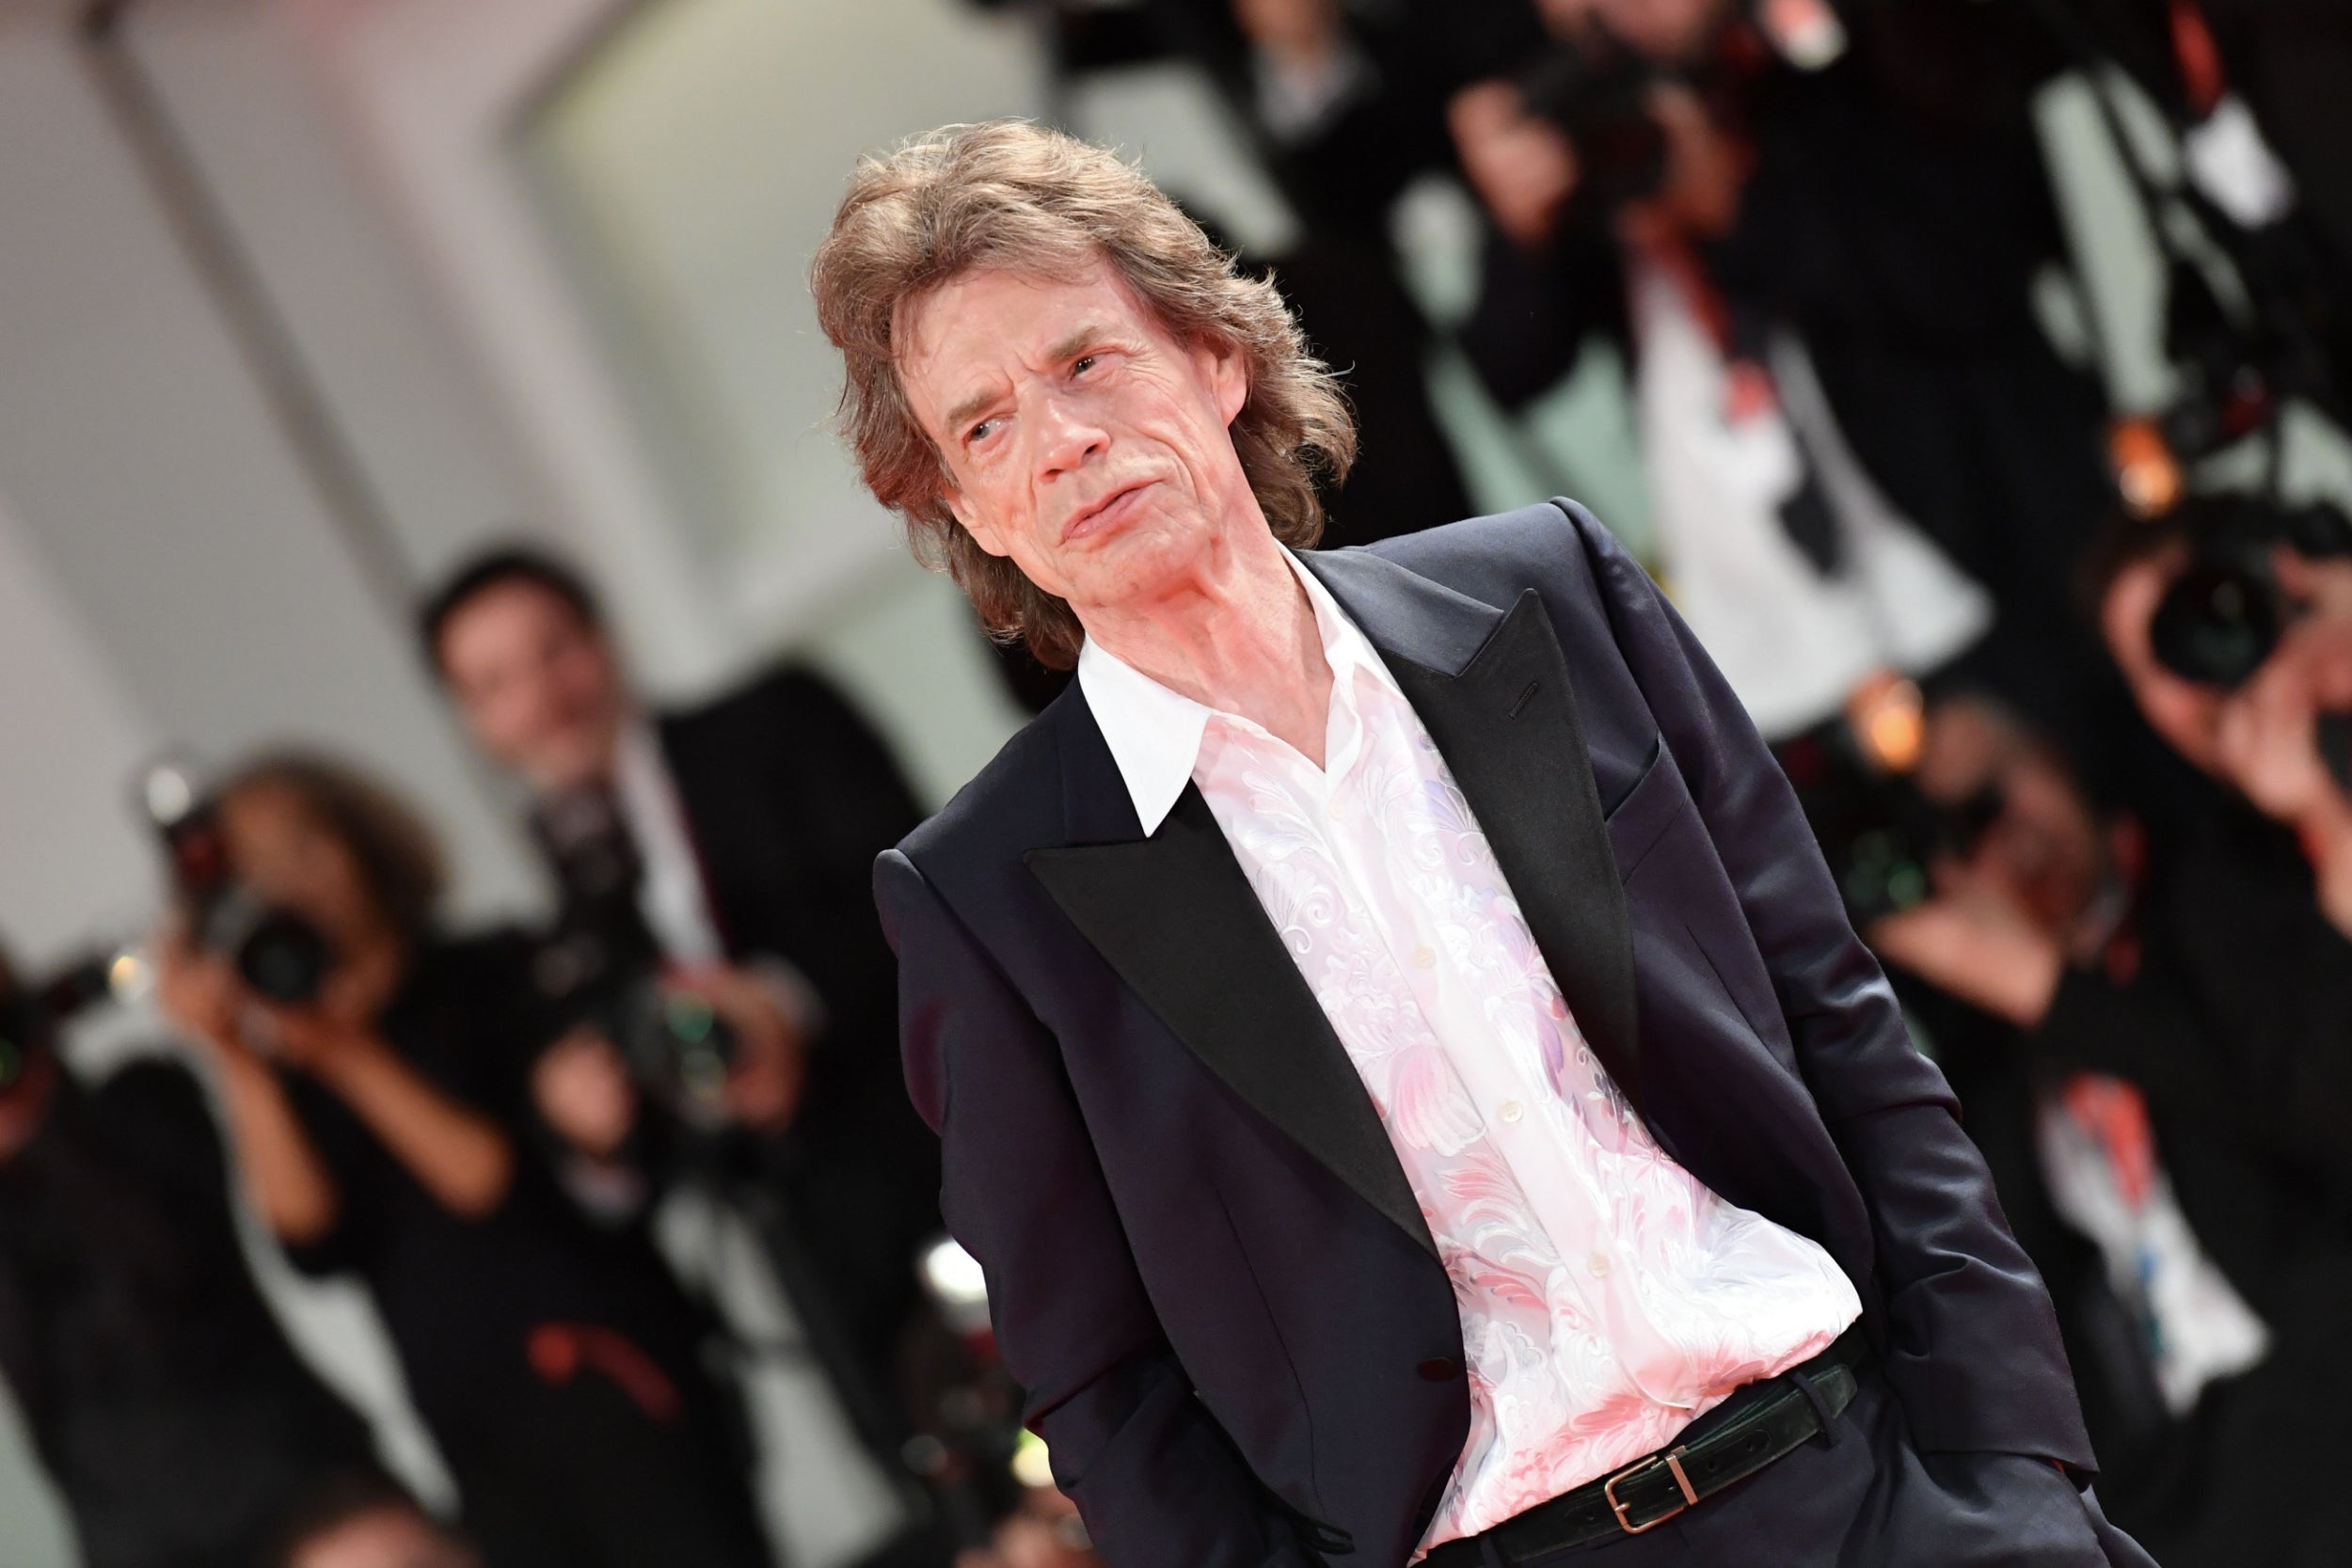 Mick Jagger - latest news, breaking stories and comment